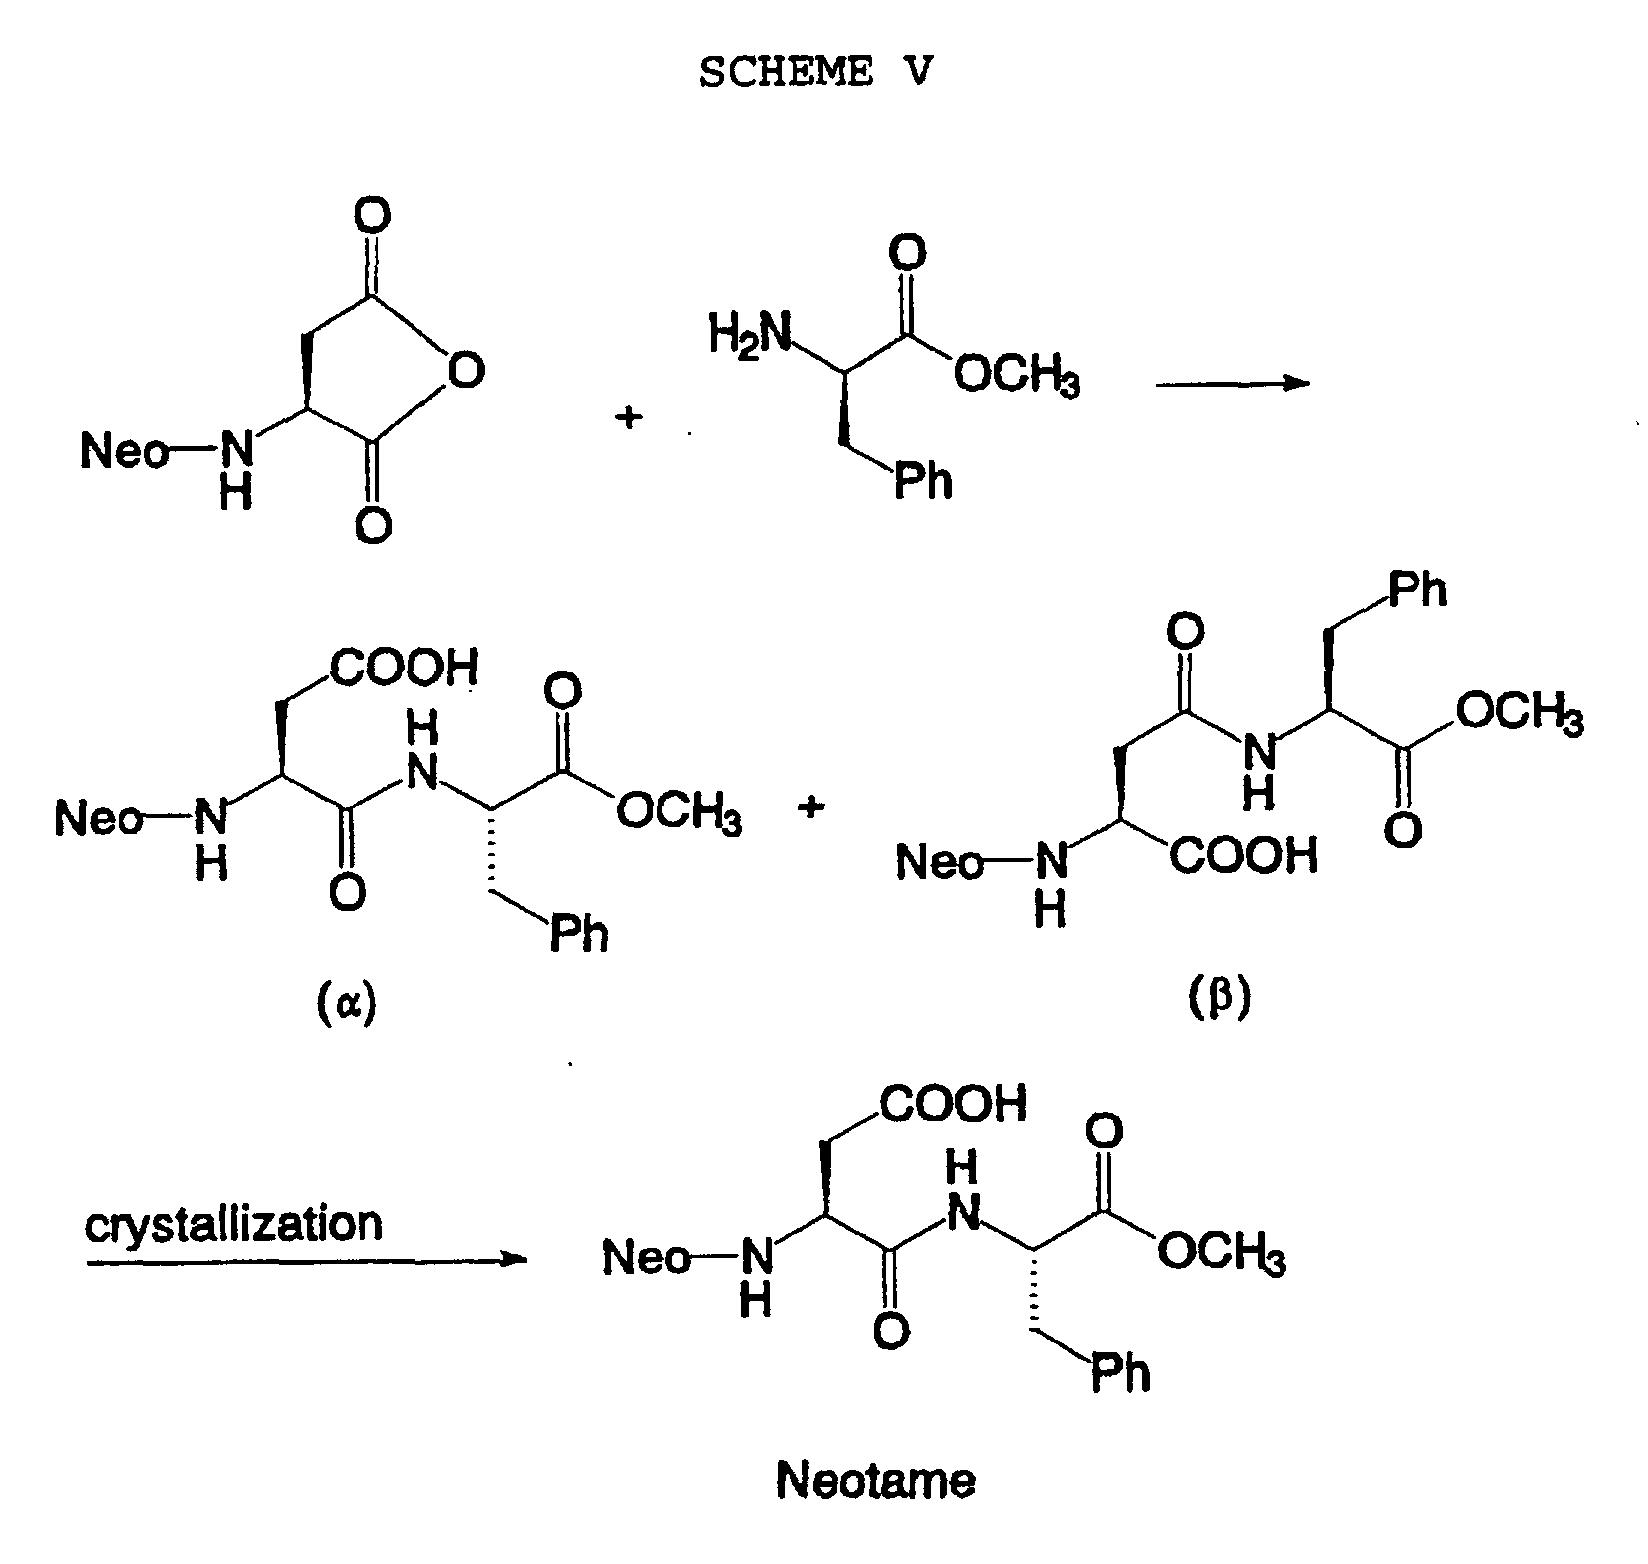 preparing esters by esterification method using Esterification of carboxylic acids the classic synthesis is the fischer esterification, which involves treating a carboxylic acid with an alcohol in the presence of a dehydrating agent: rco 2 h + r'oh rco 2 r' + h 2 o the equilibrium constant for such reactions is about 5 for typical esters, eg, ethyl acetate.